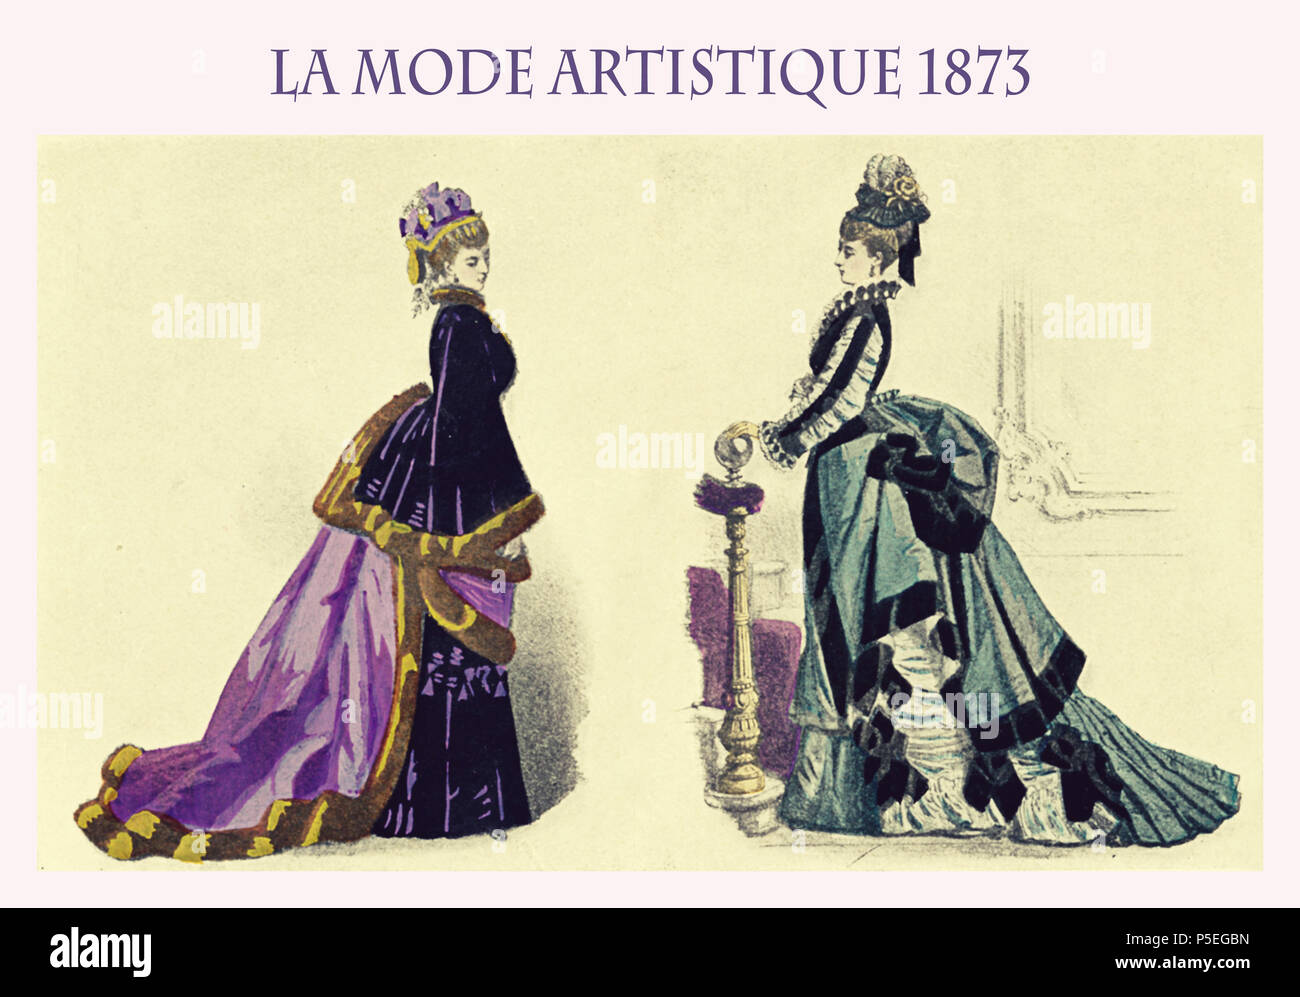 fashion end '800, French magazine La mode artistique 1873 presents two ladies with fancy flounced skirts, cape and hairdo - Stock Image